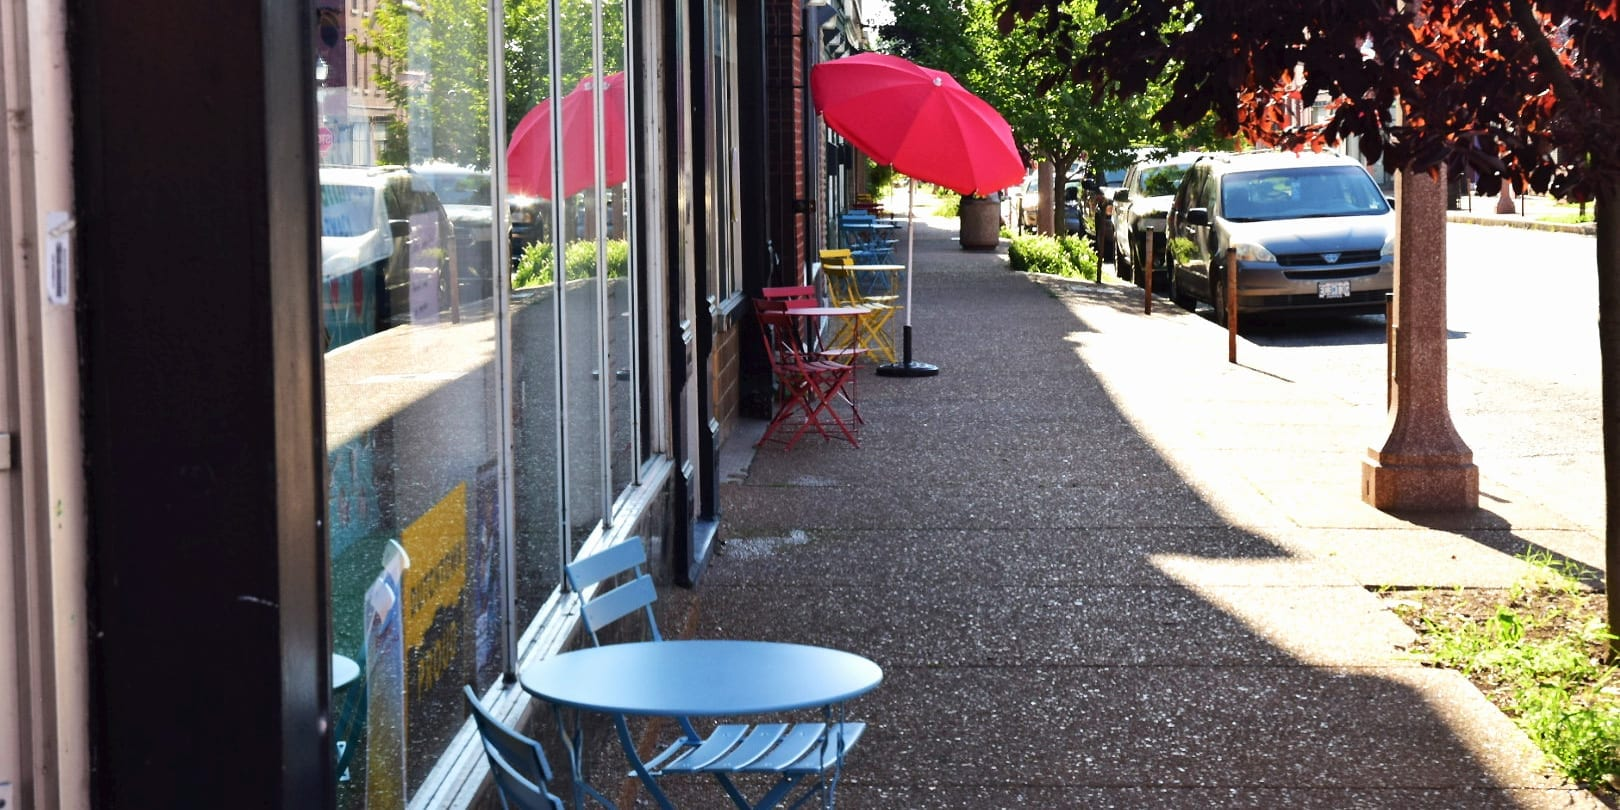 New sidewalk furniture on Meramec Street in Downtown Dutchtown.